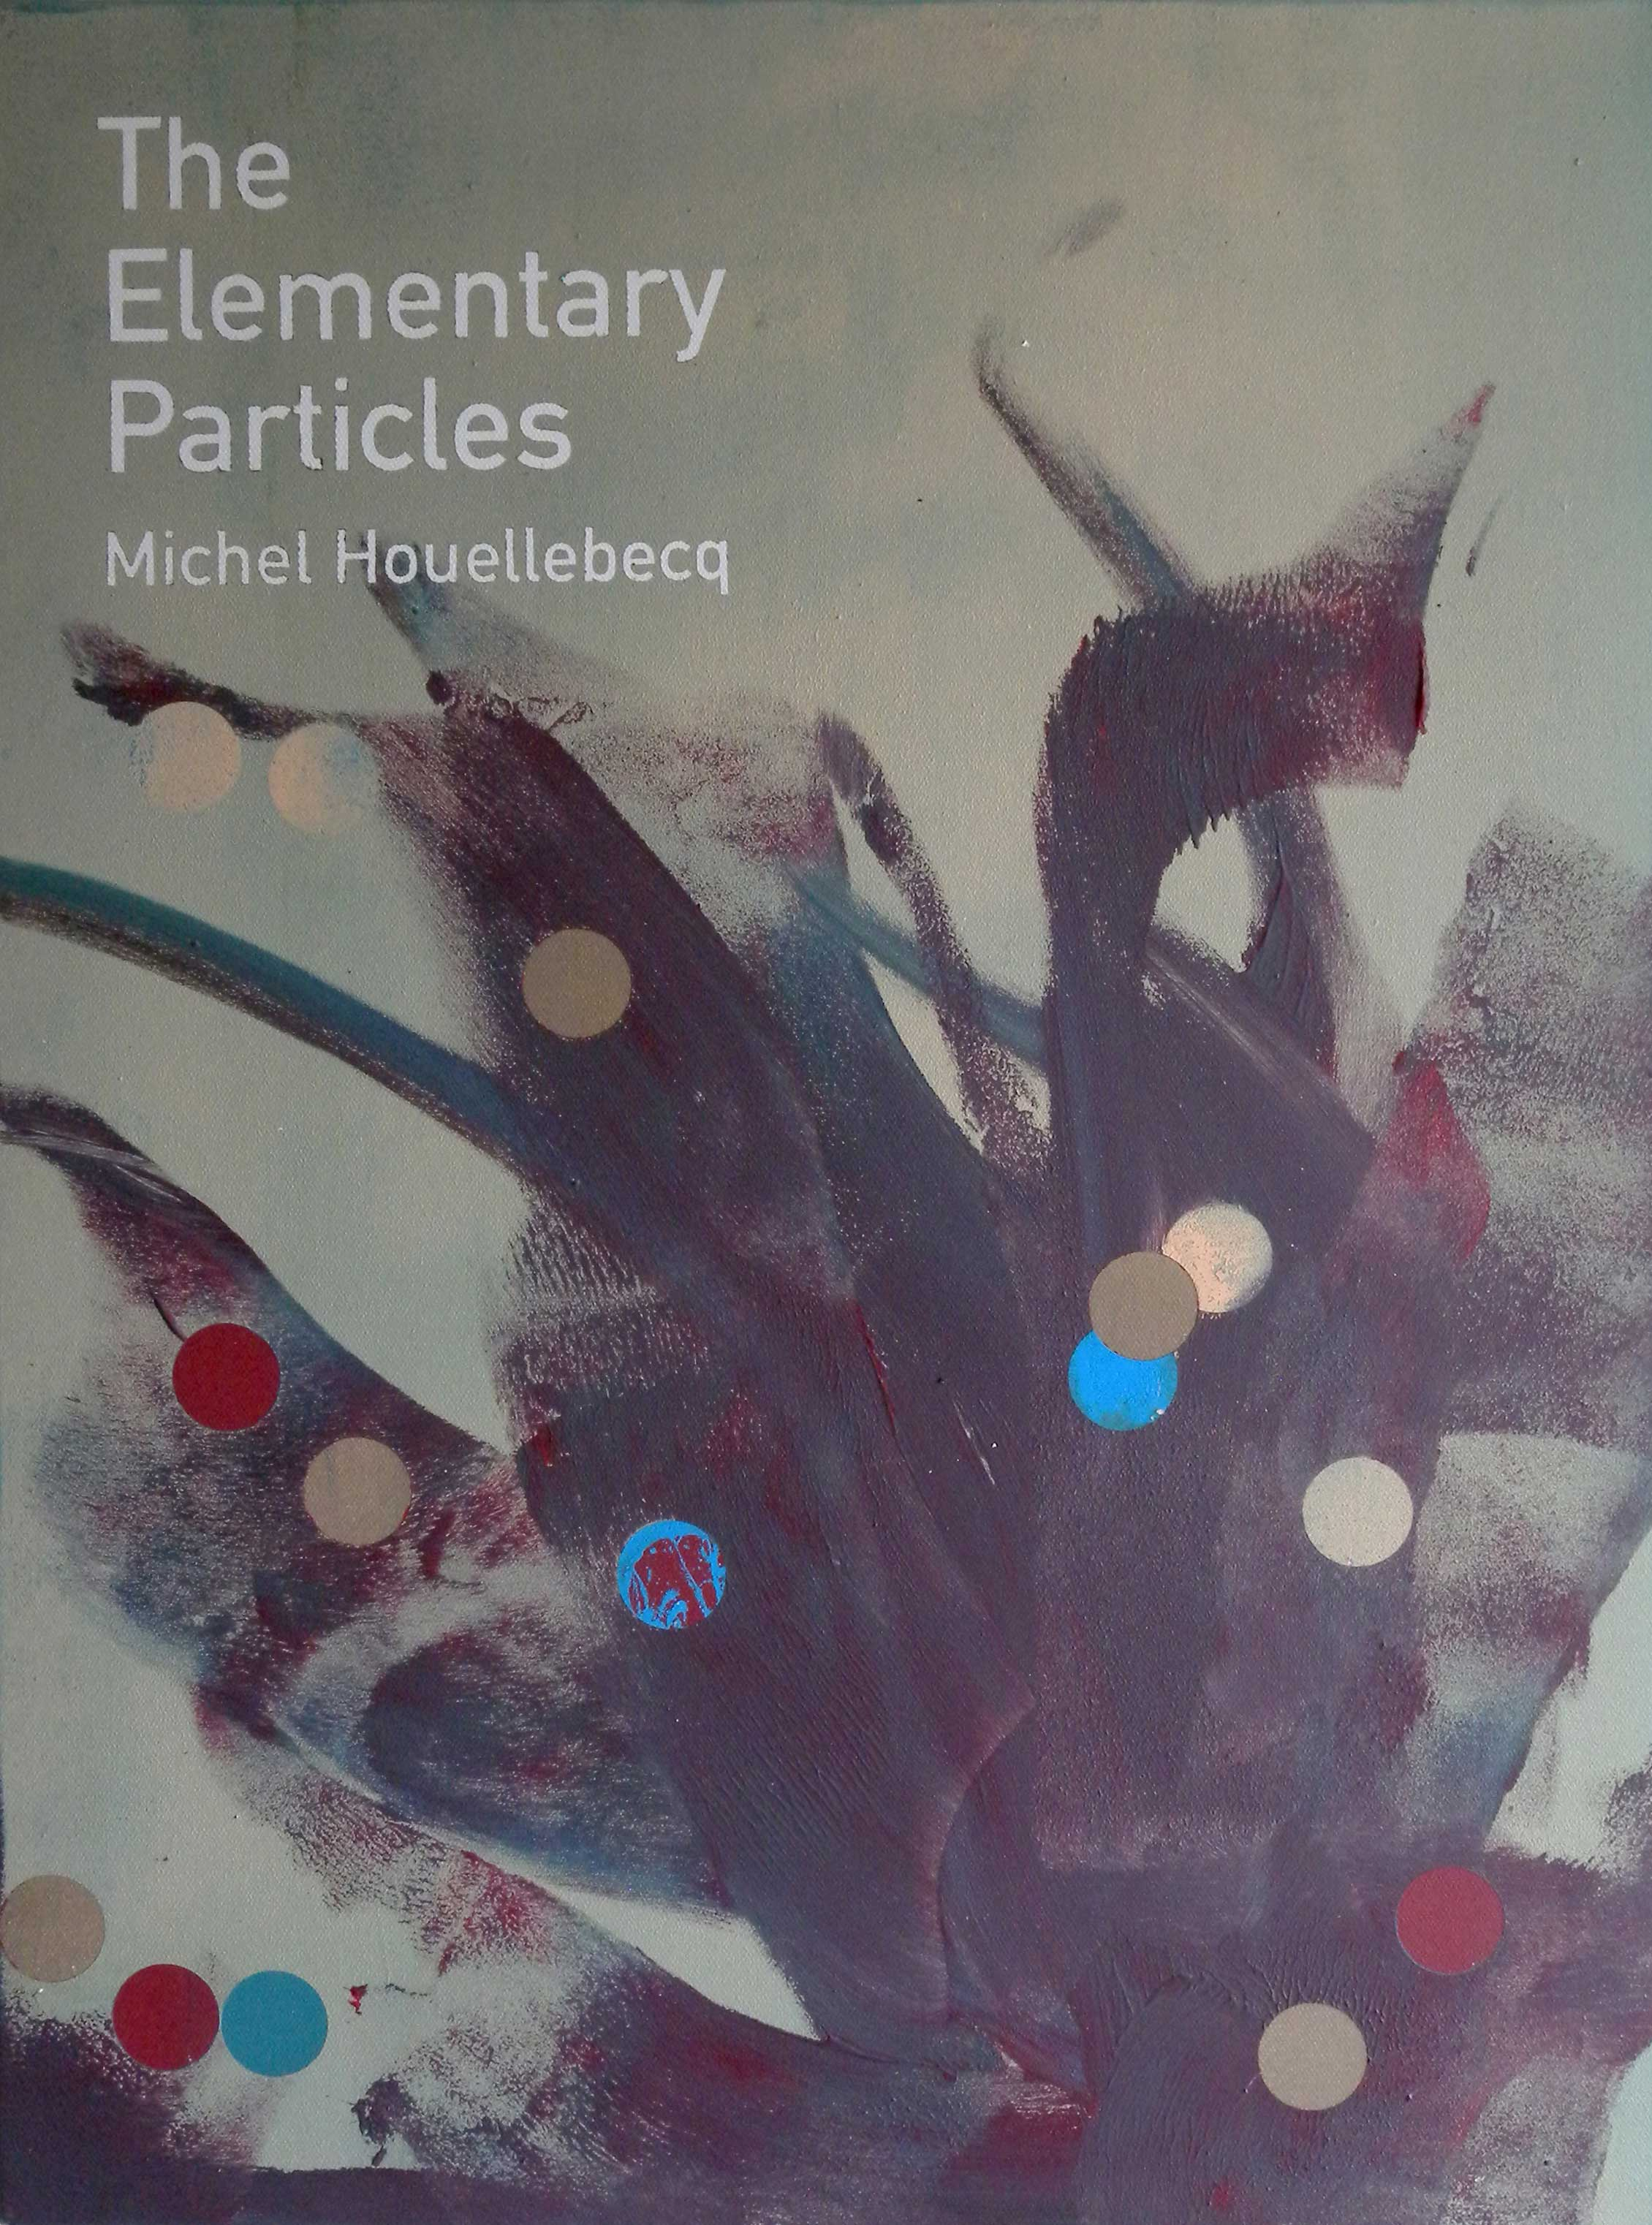 Heman CHONG  The Elementary Particles / Michel Houellebecq  2013 Acrylic on canvas 61 x 46 x 3.5 cm